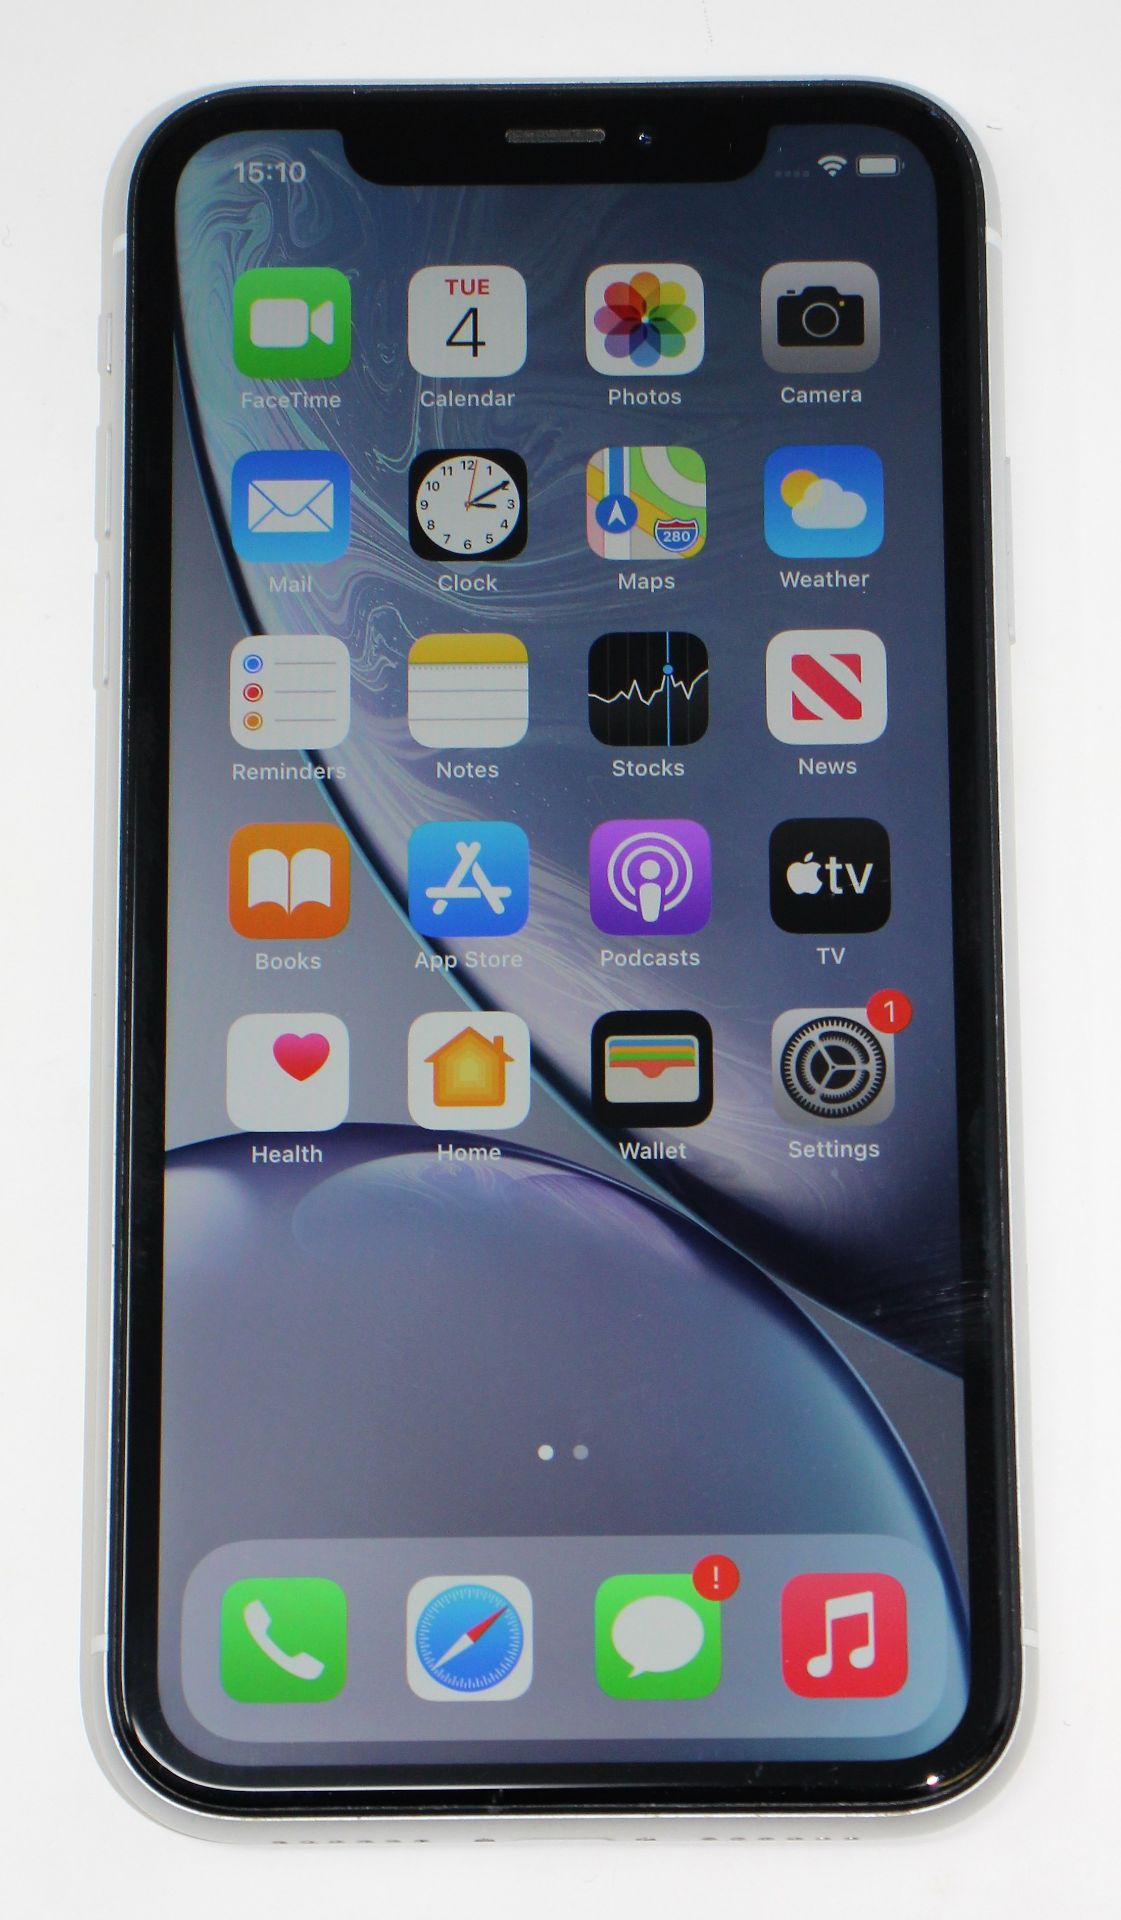 A pre-owned Apple iPhone XR (Global/A2105) 64GB in White (iCloud activation clear, some light